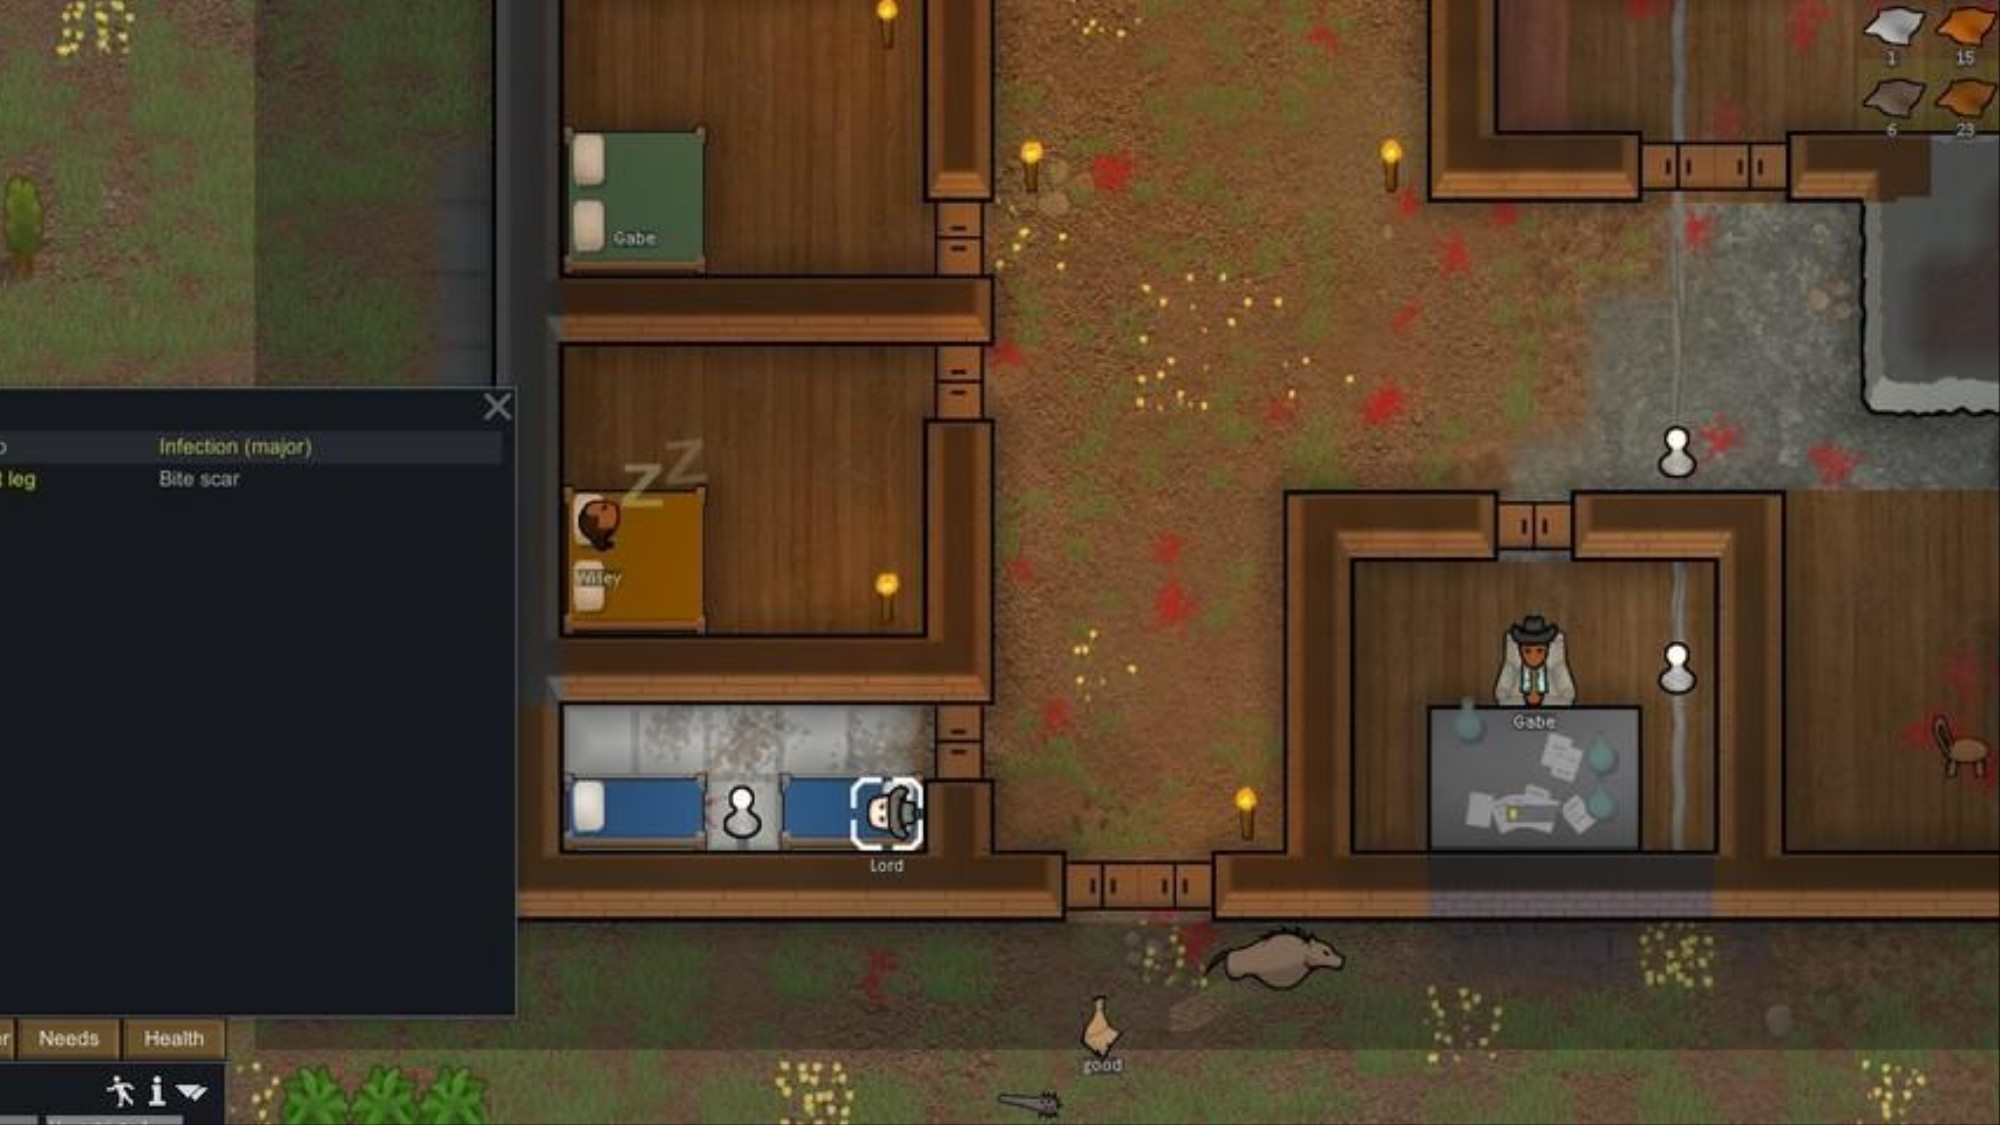 How the Abstraction of 'RimWorld' Highlights Real-Life